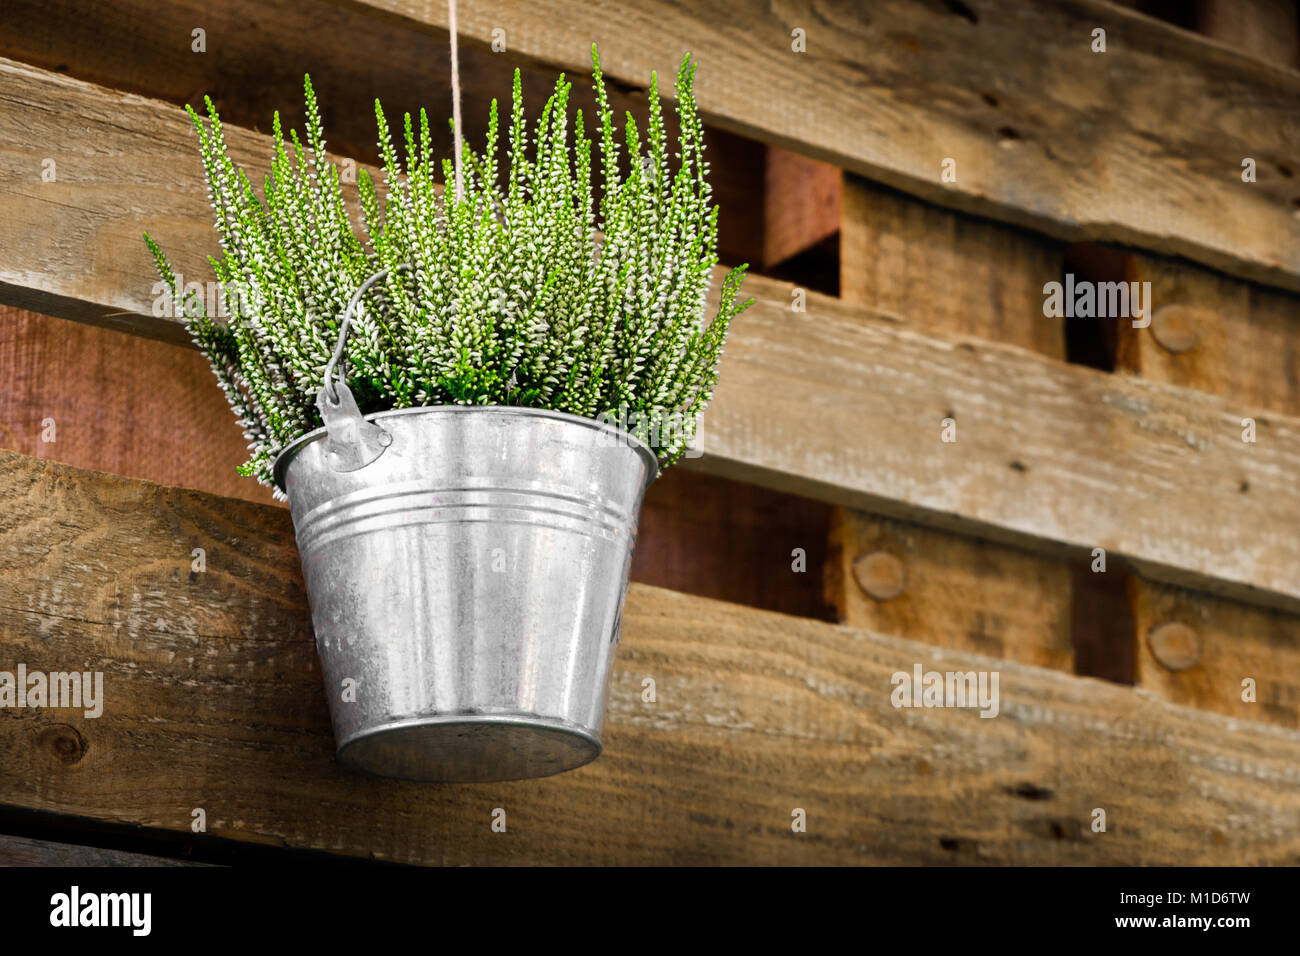 potted plants wooden background heather metal bucket hanging flowerpot flower shop design - Stock Image